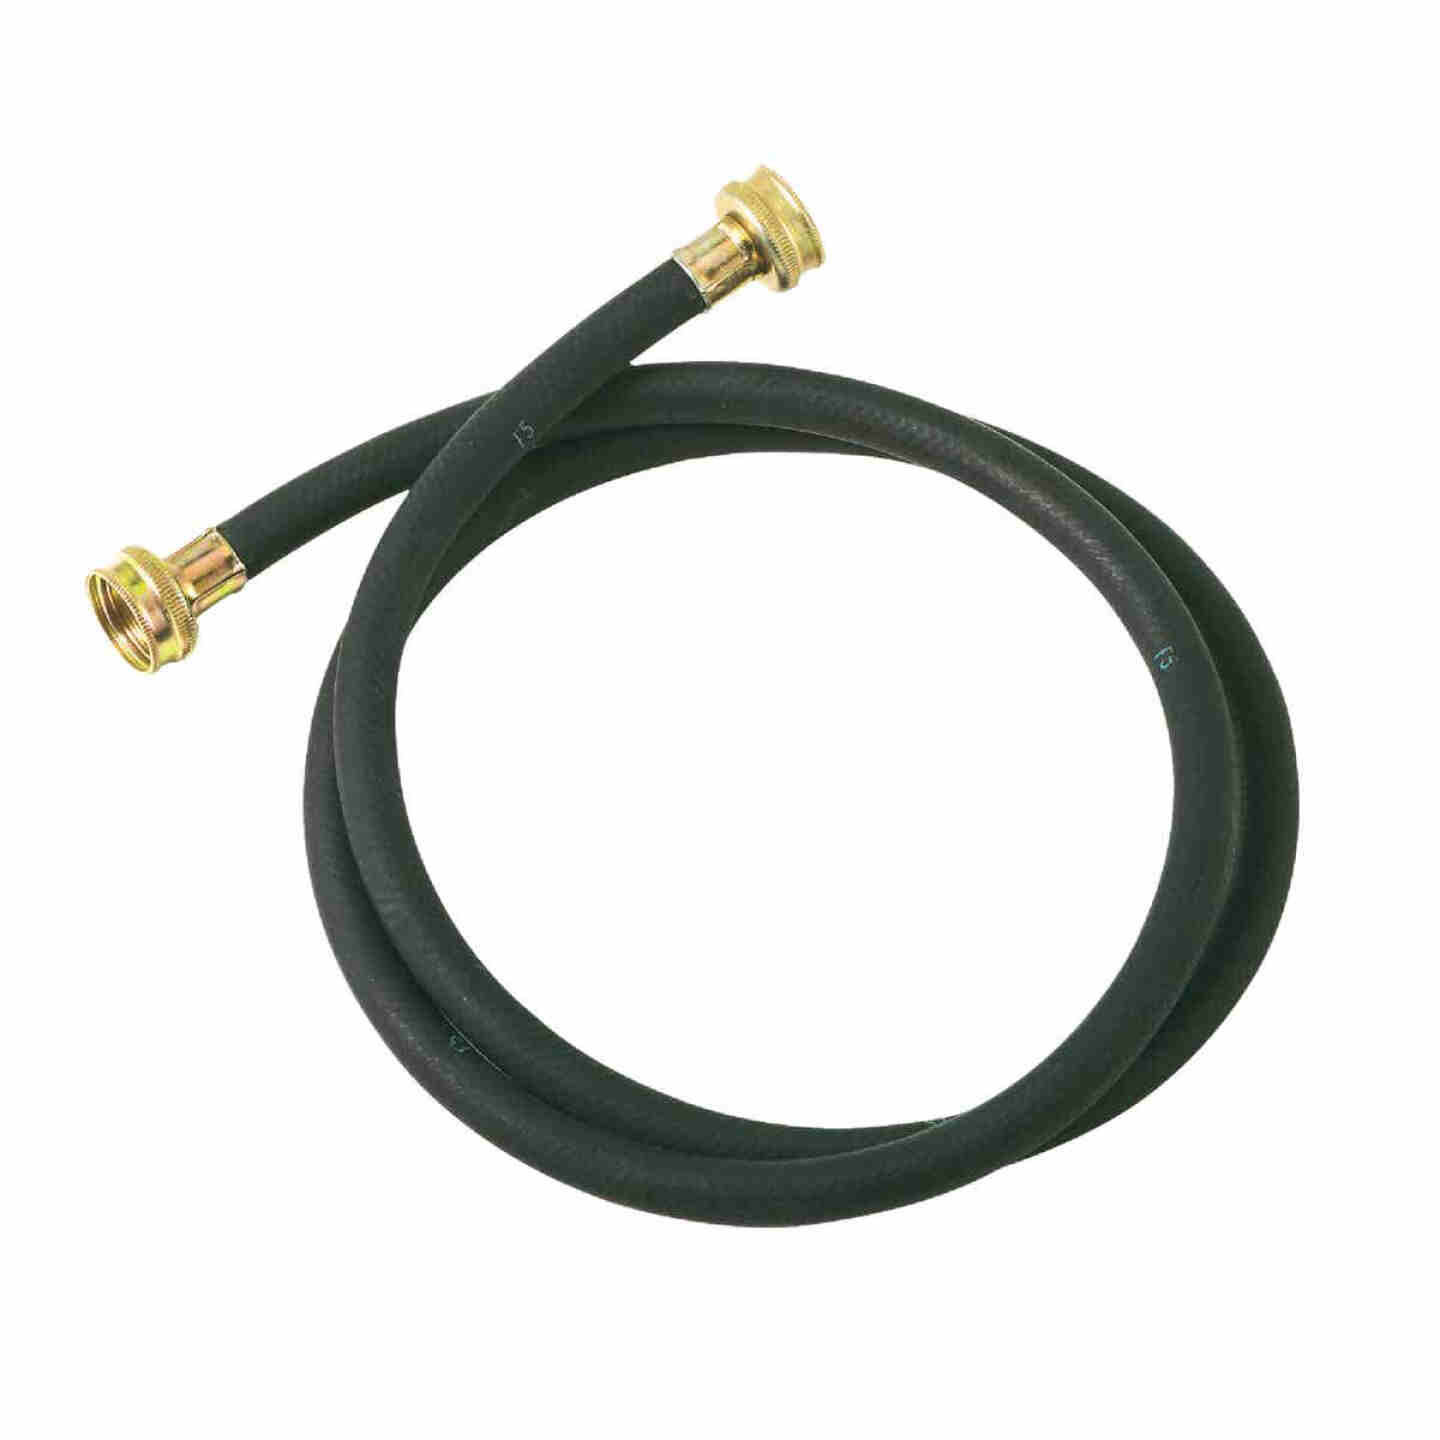 Do it 4 Ft. Reinforced EPDM Rubber Inlet Pressure Hose Image 1